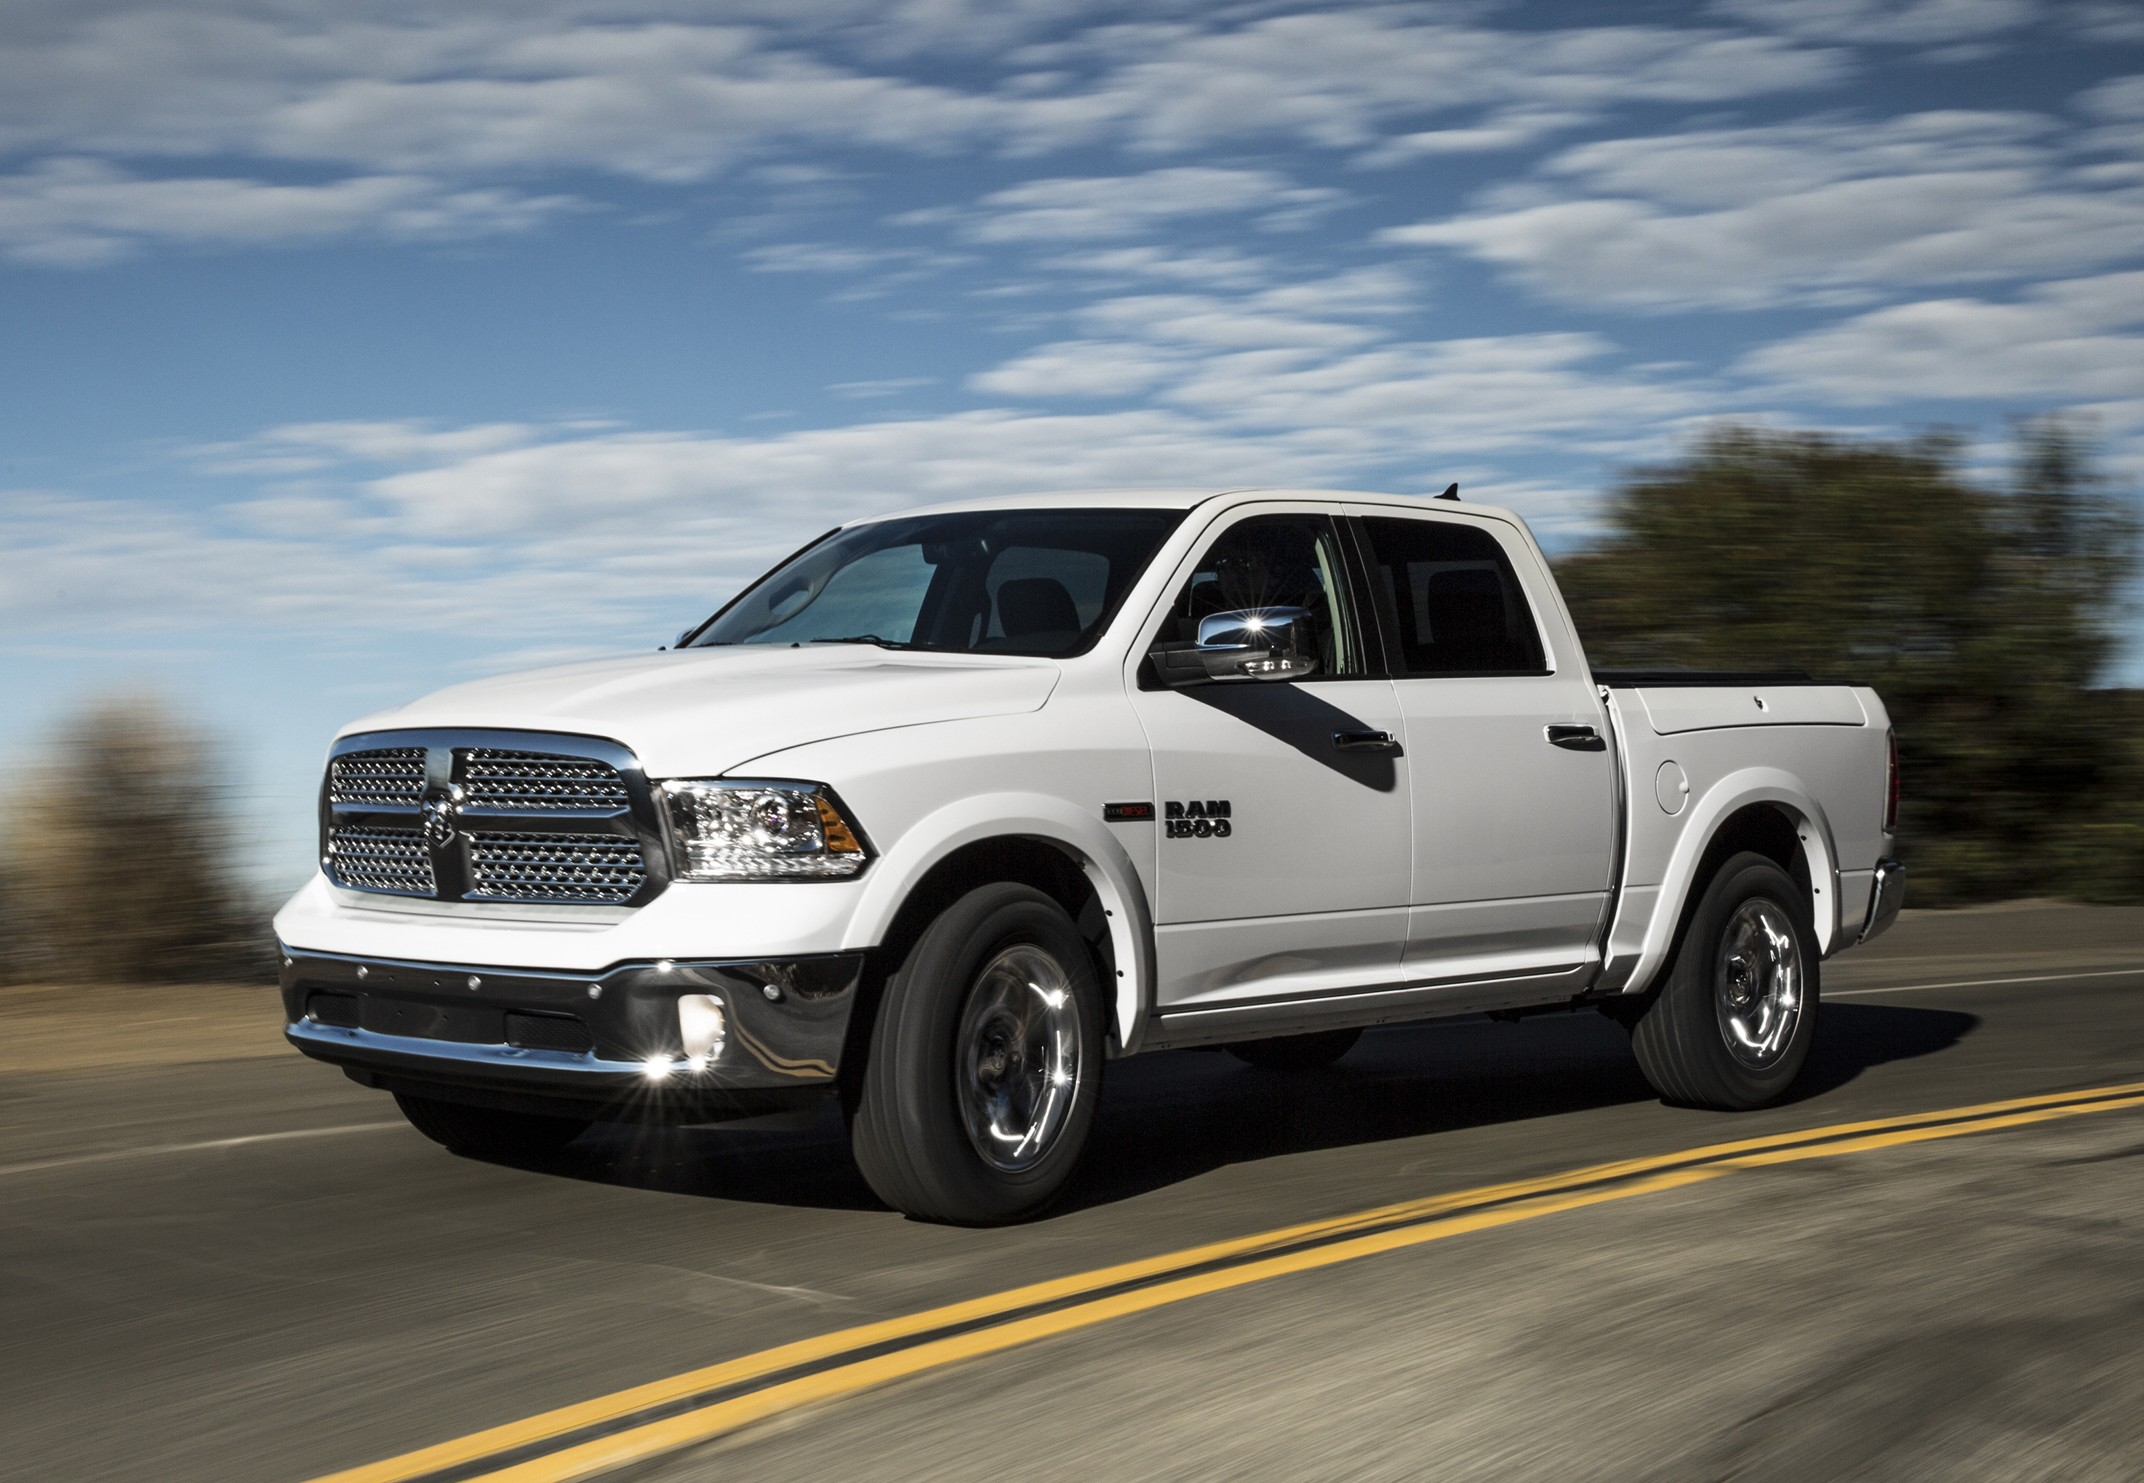 2014 ram 1500 ecodiesel. Black Bedroom Furniture Sets. Home Design Ideas